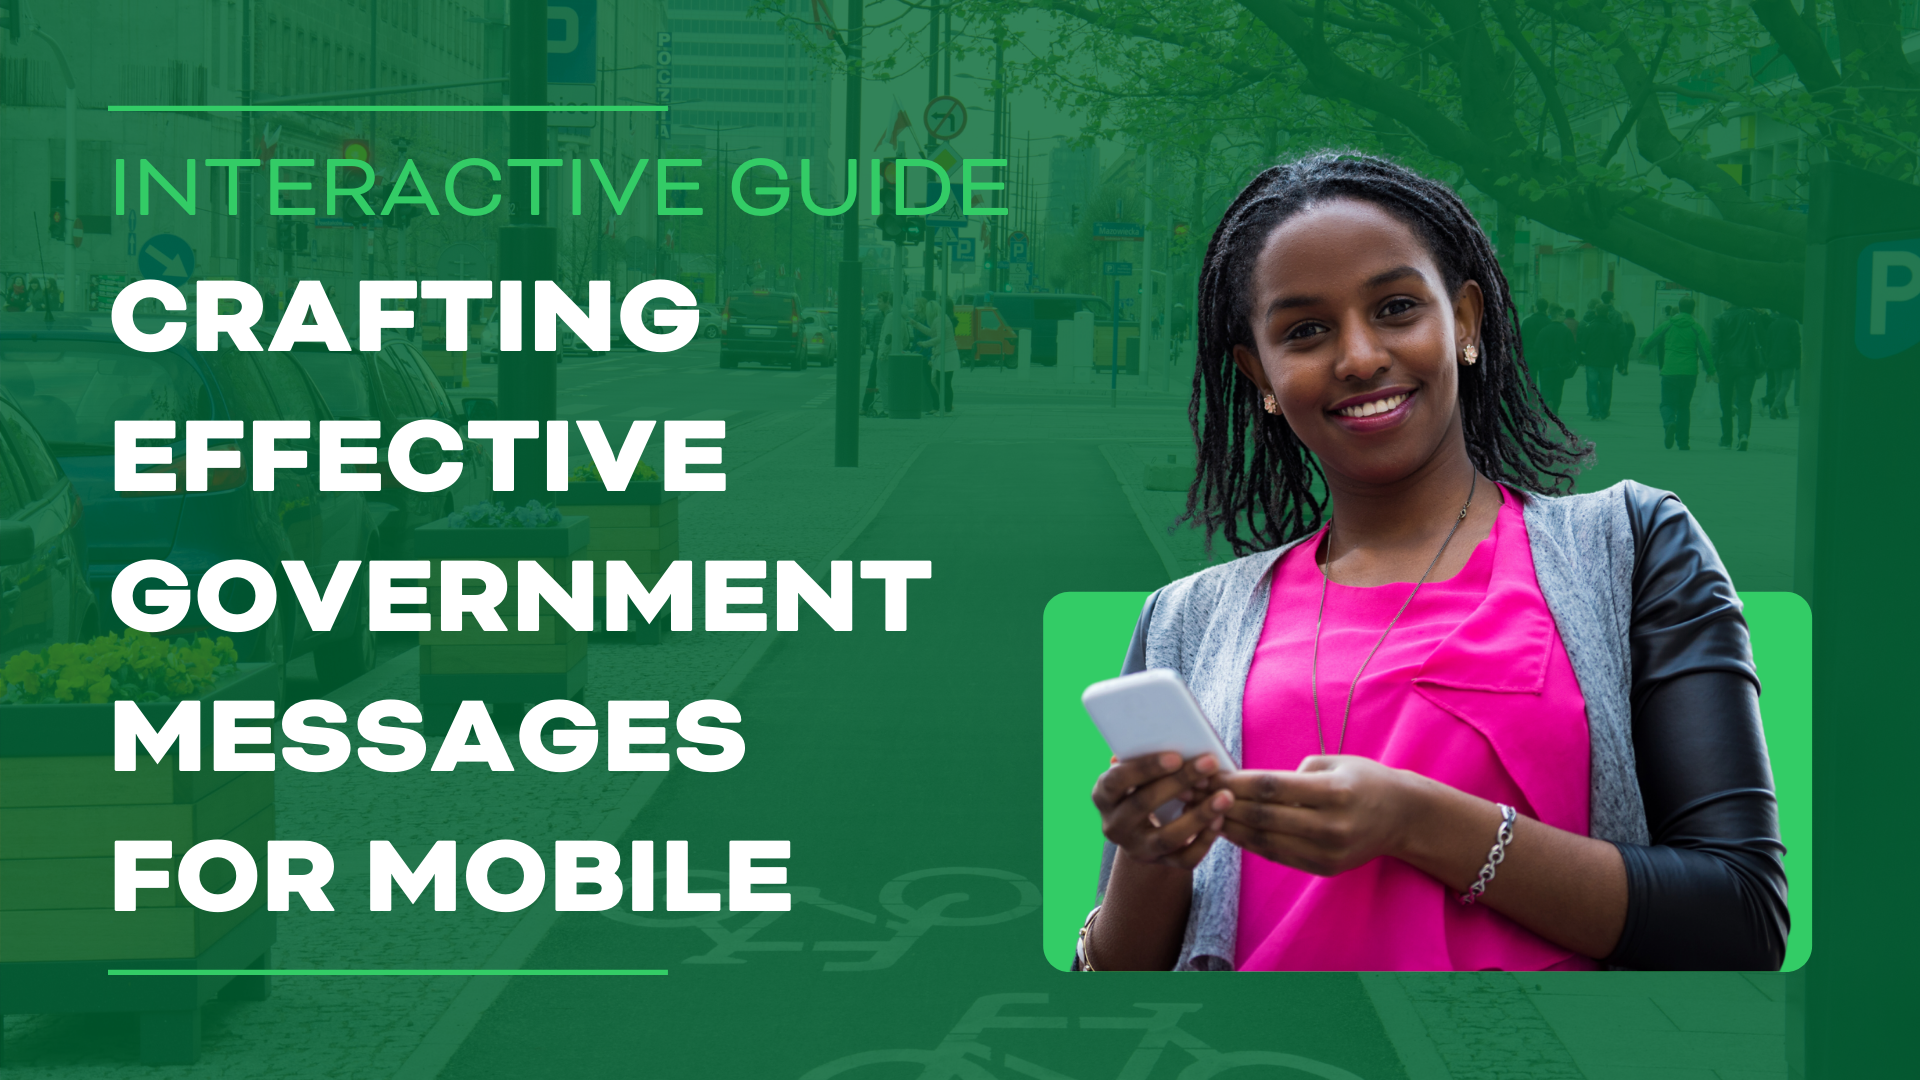 Guide: 4 Steps for Crafting Effective Government Messages for Mobile